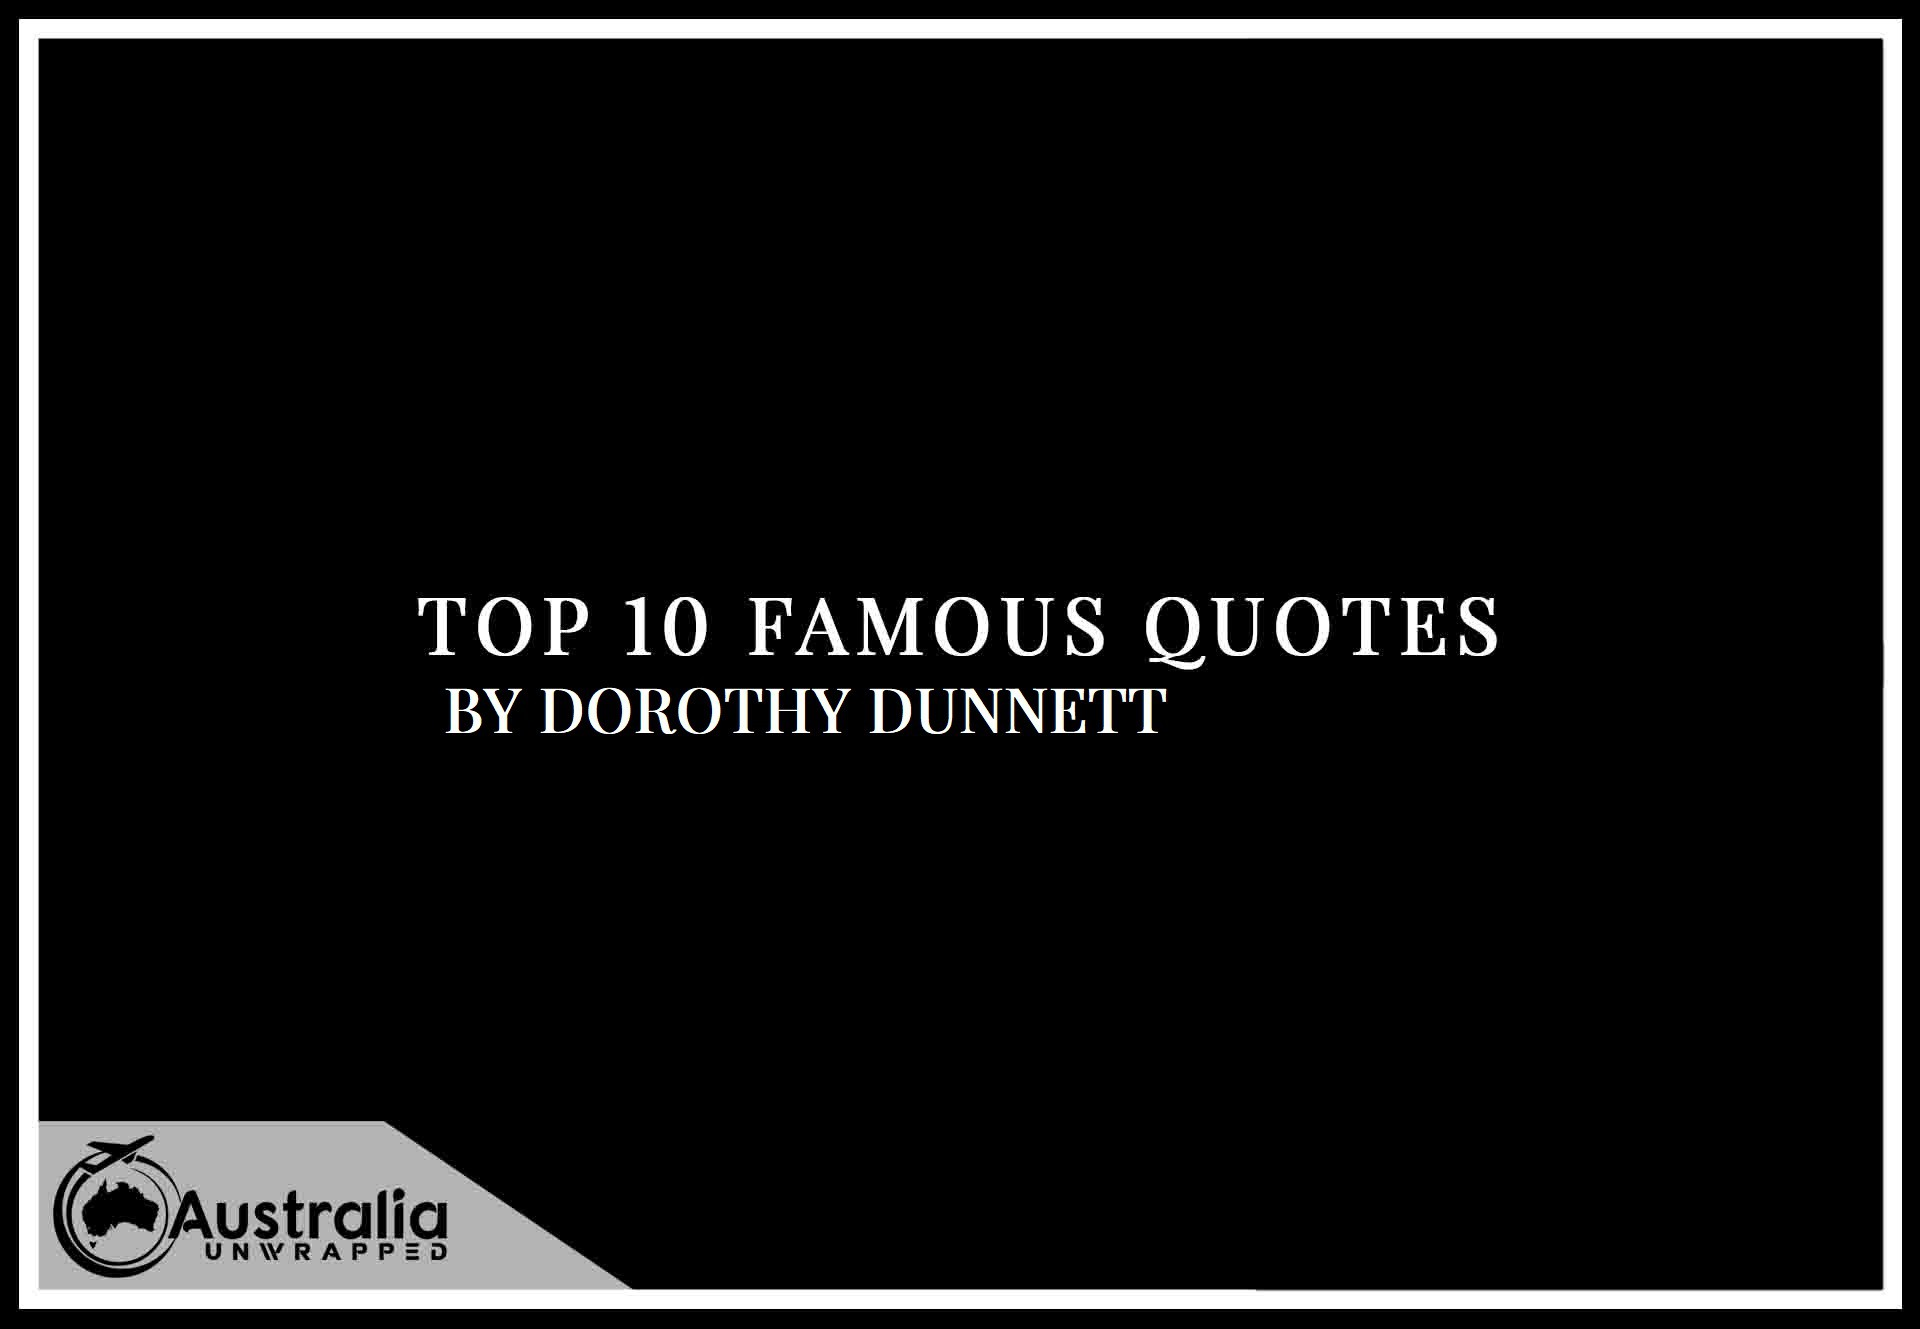 Top 10 Famous Quotes by Author Dorothy Dunnett